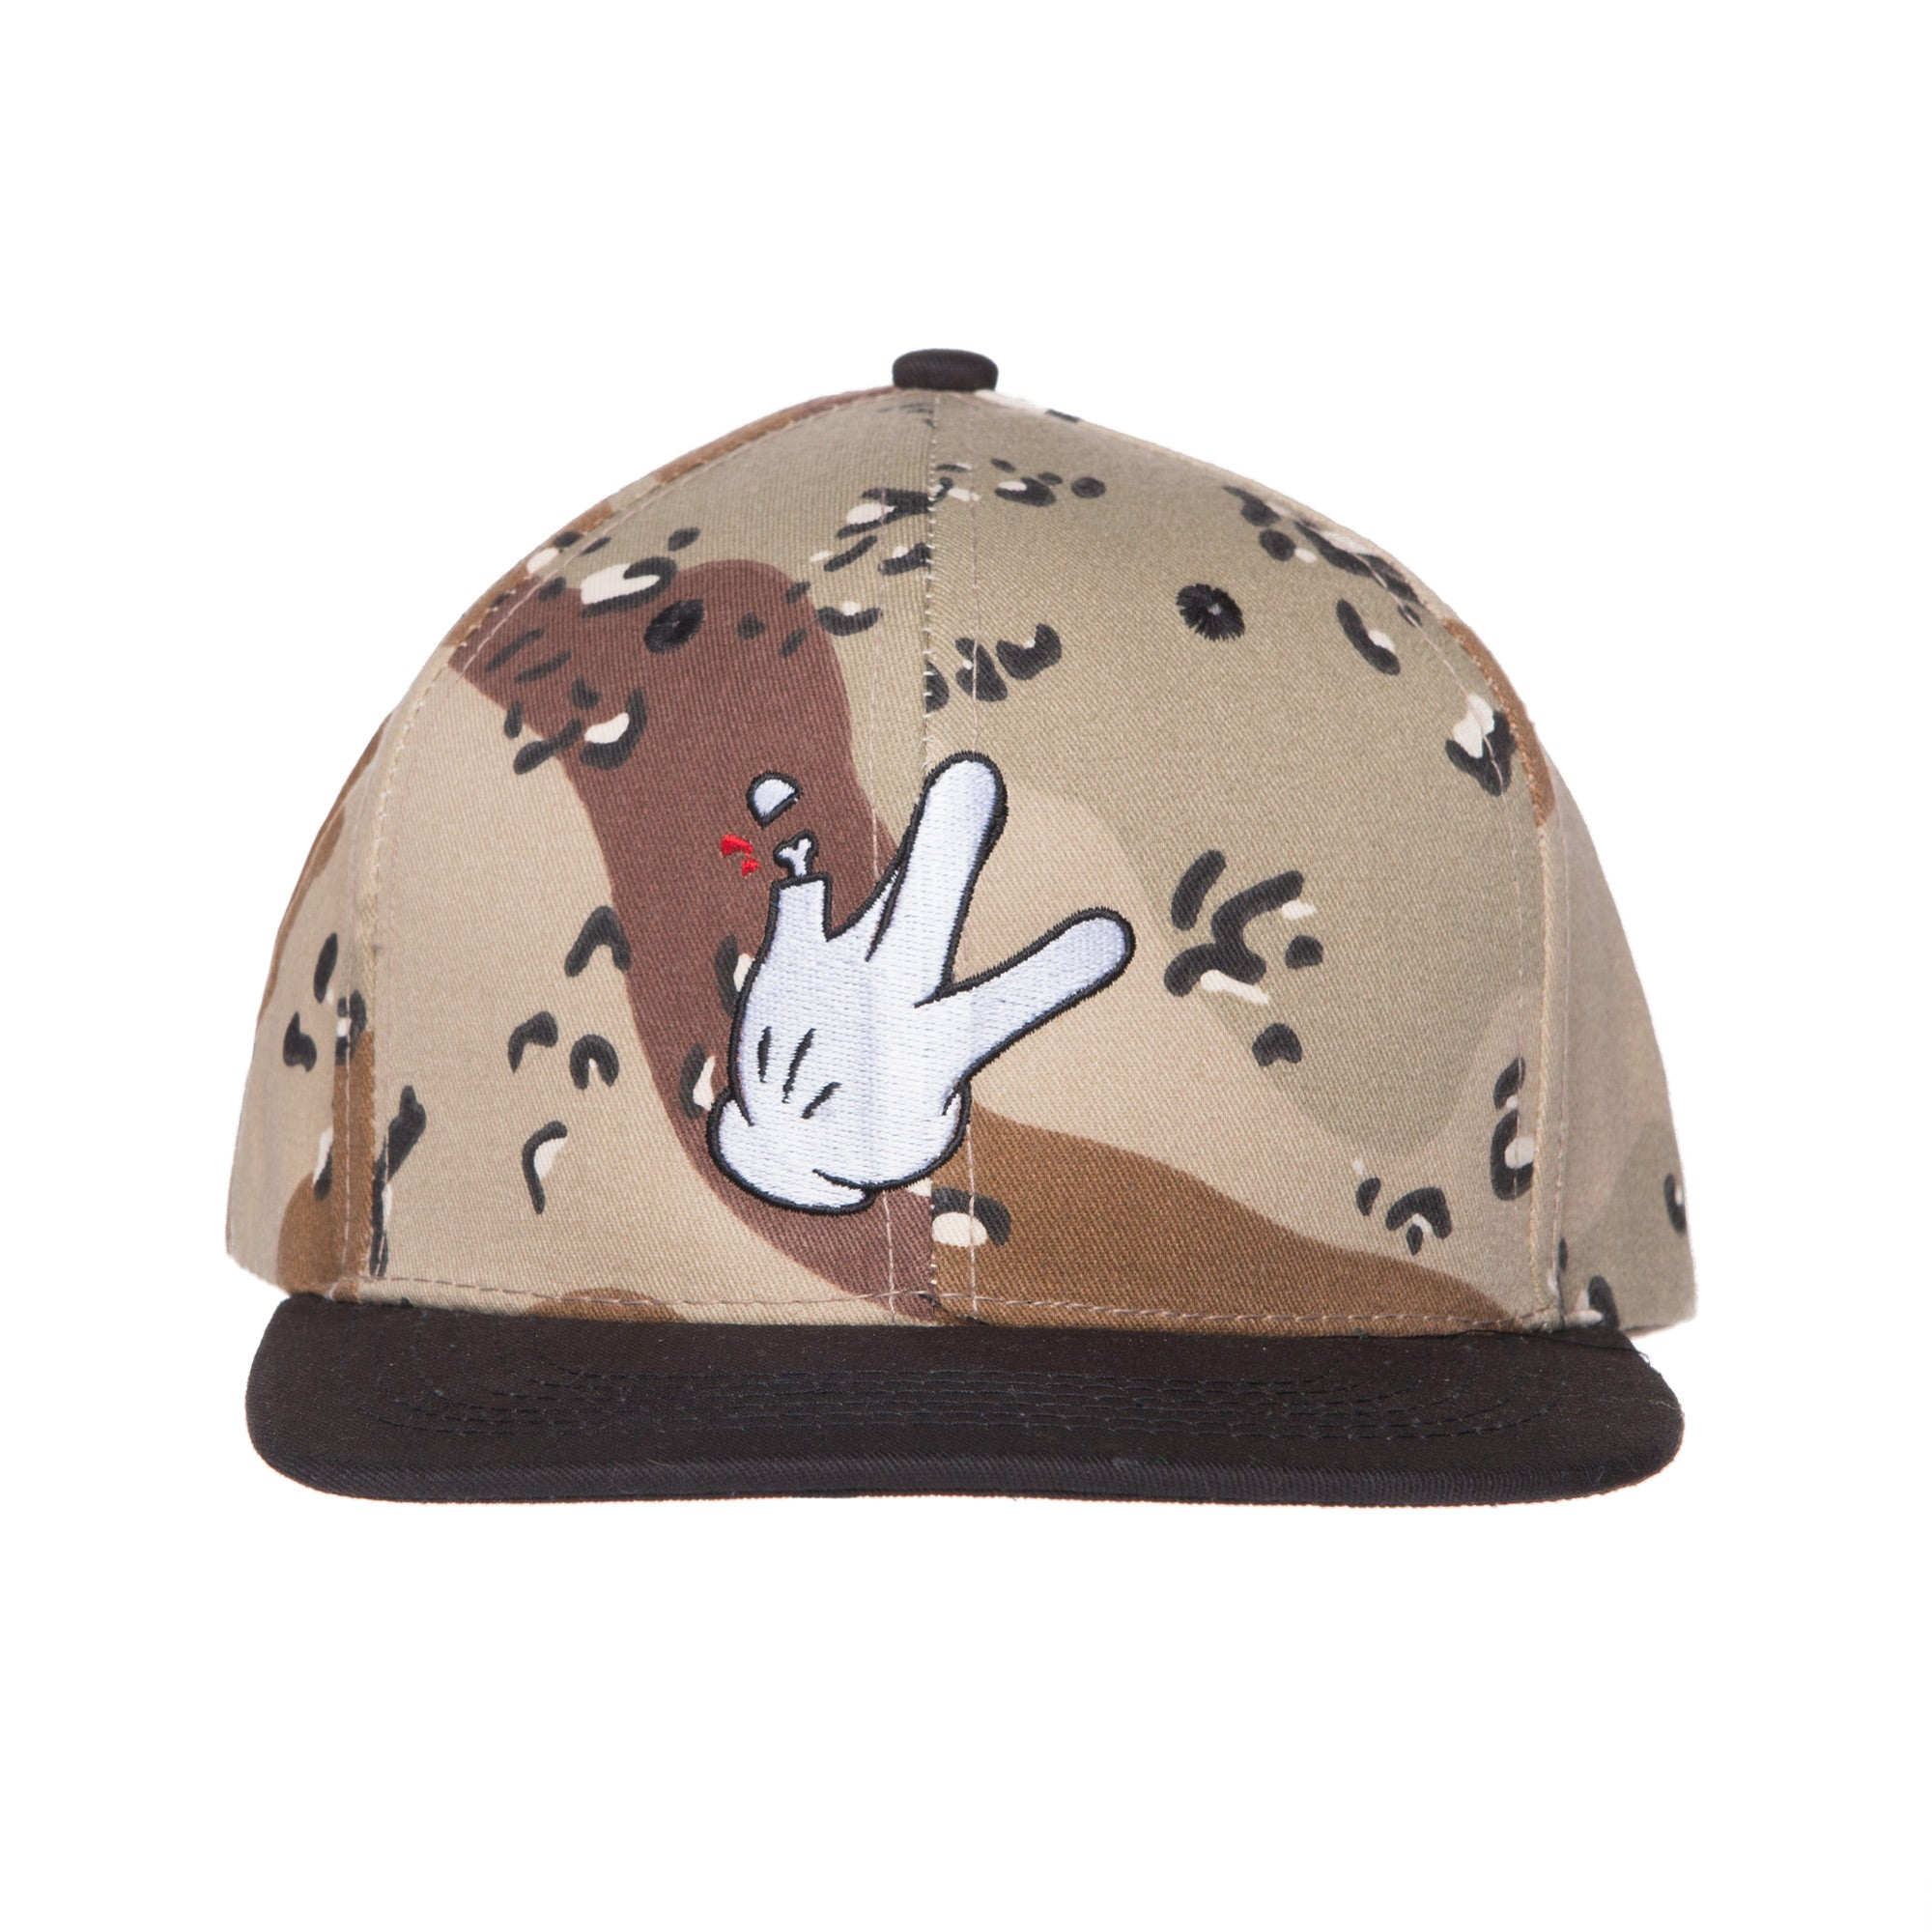 "Cotton Dessert Camo/Black Flatbill RaceKraft ""Glove"" SnapBack Hat"